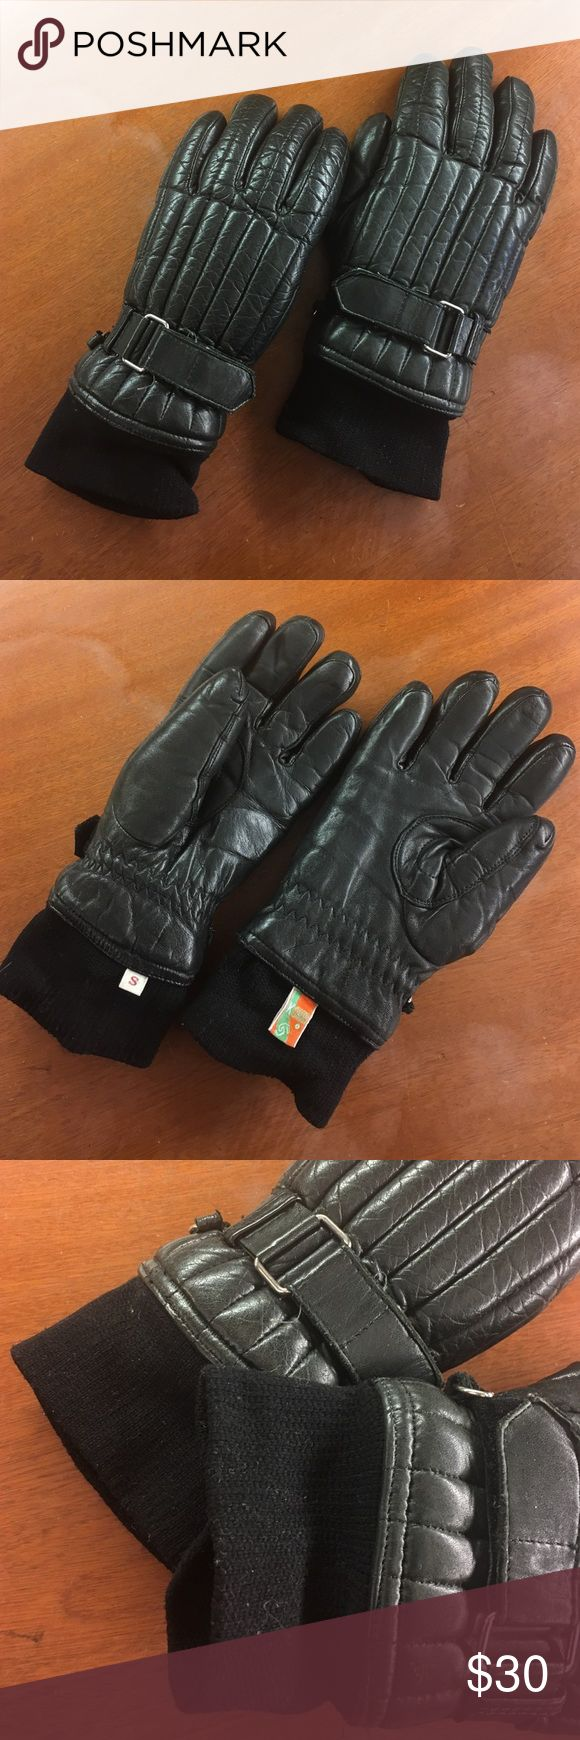 Womens Leather Insulated Gloves - Kombi ski snowboard women s small leather gloves